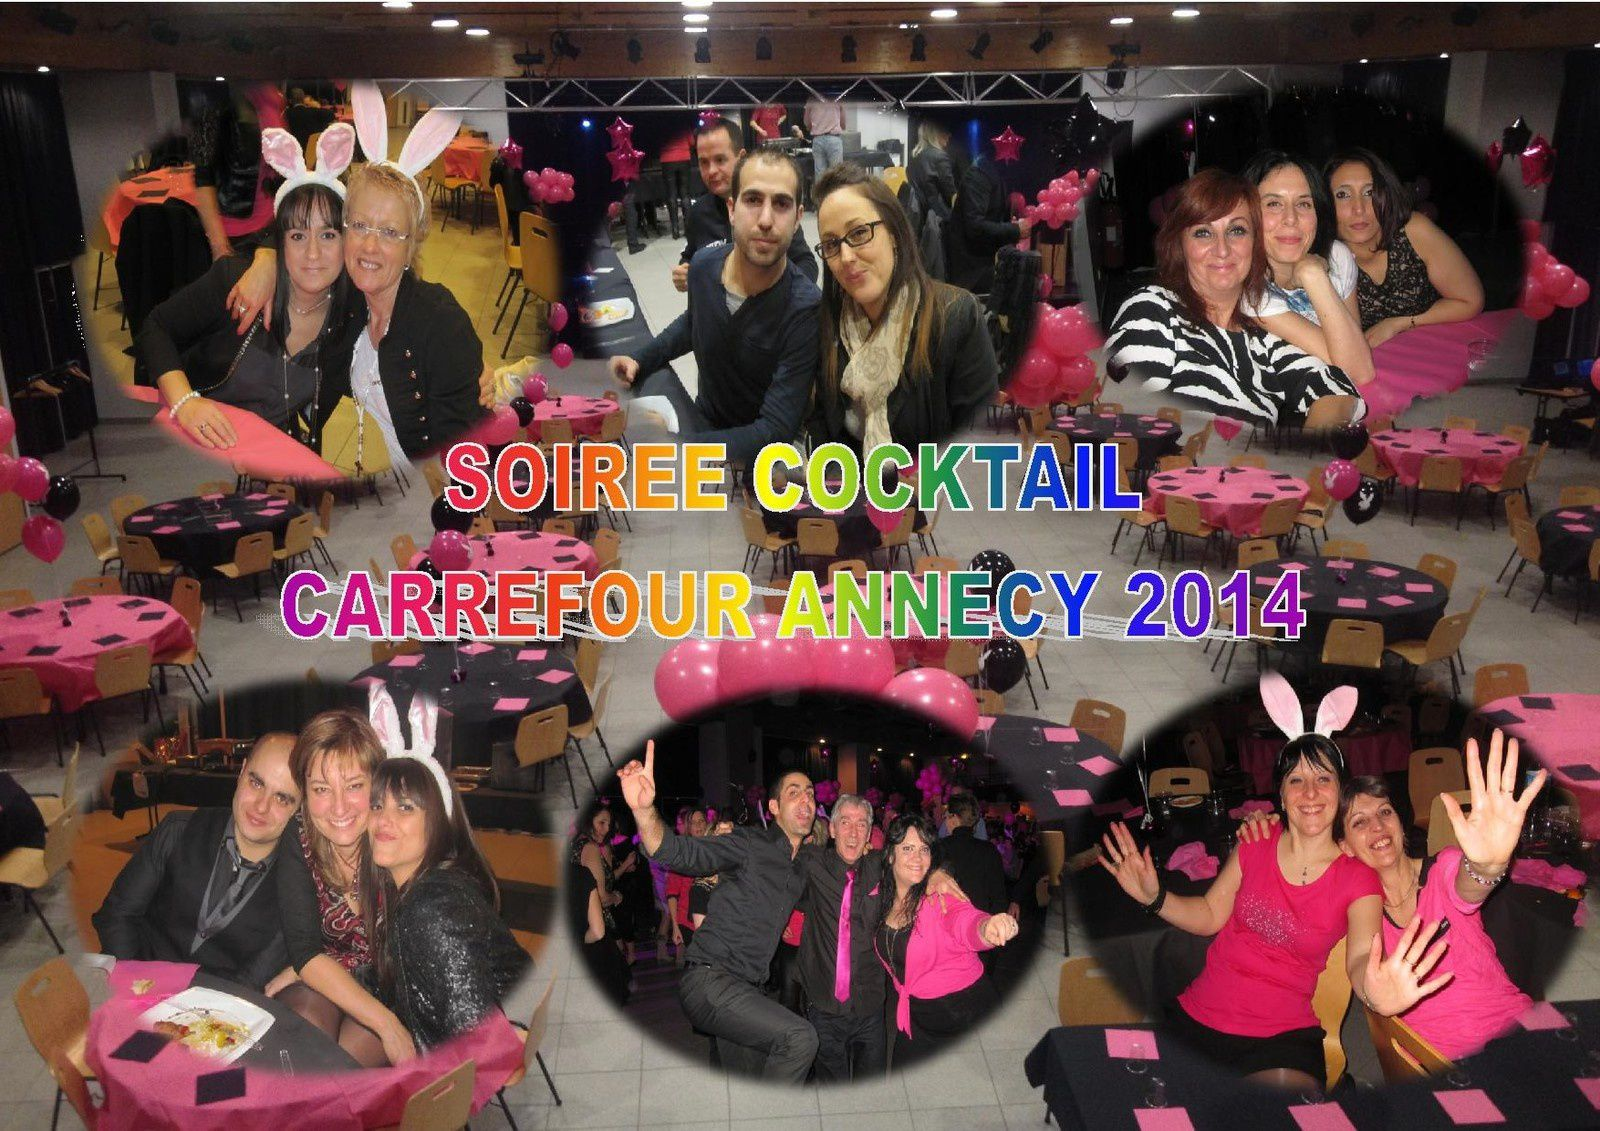 L'ALBUM PHOTO DE LA SOIREE COCKTAIL CARREFOUR ANNECY 2014